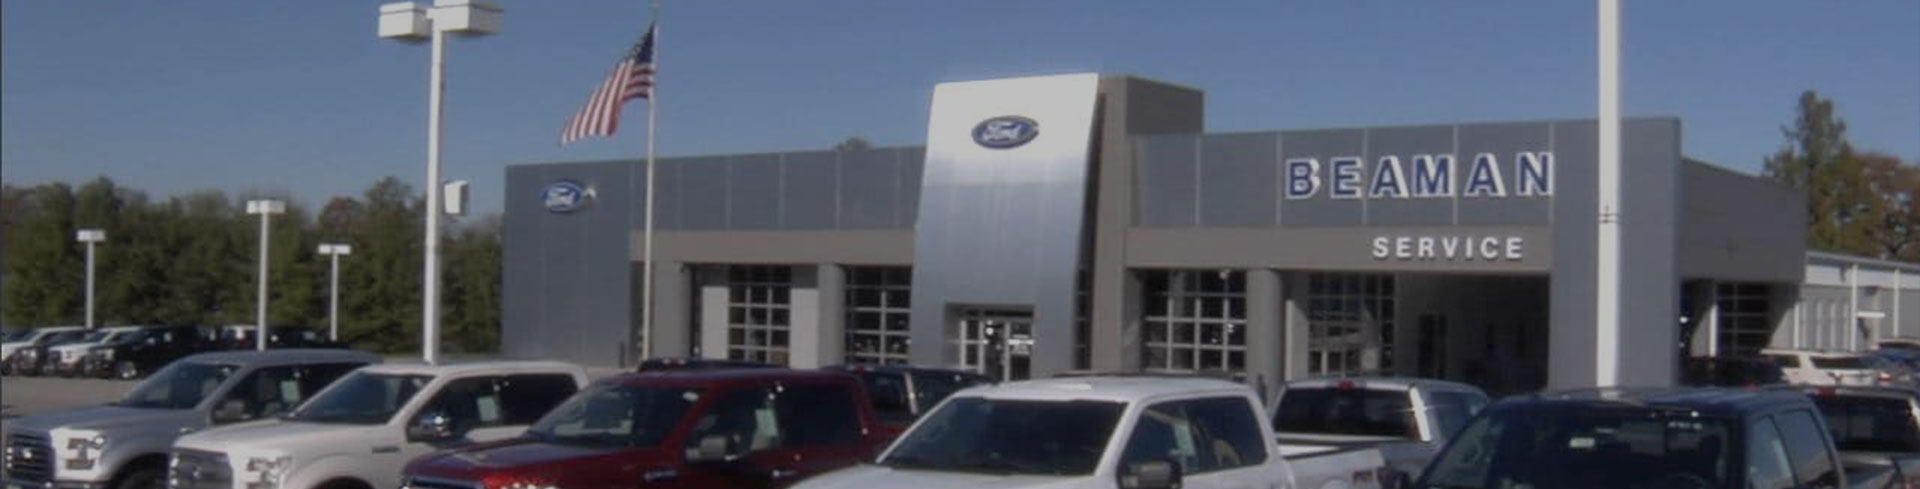 At Beaman Ford, our goal is to provide you with consistent excellence when you visit our dealership.